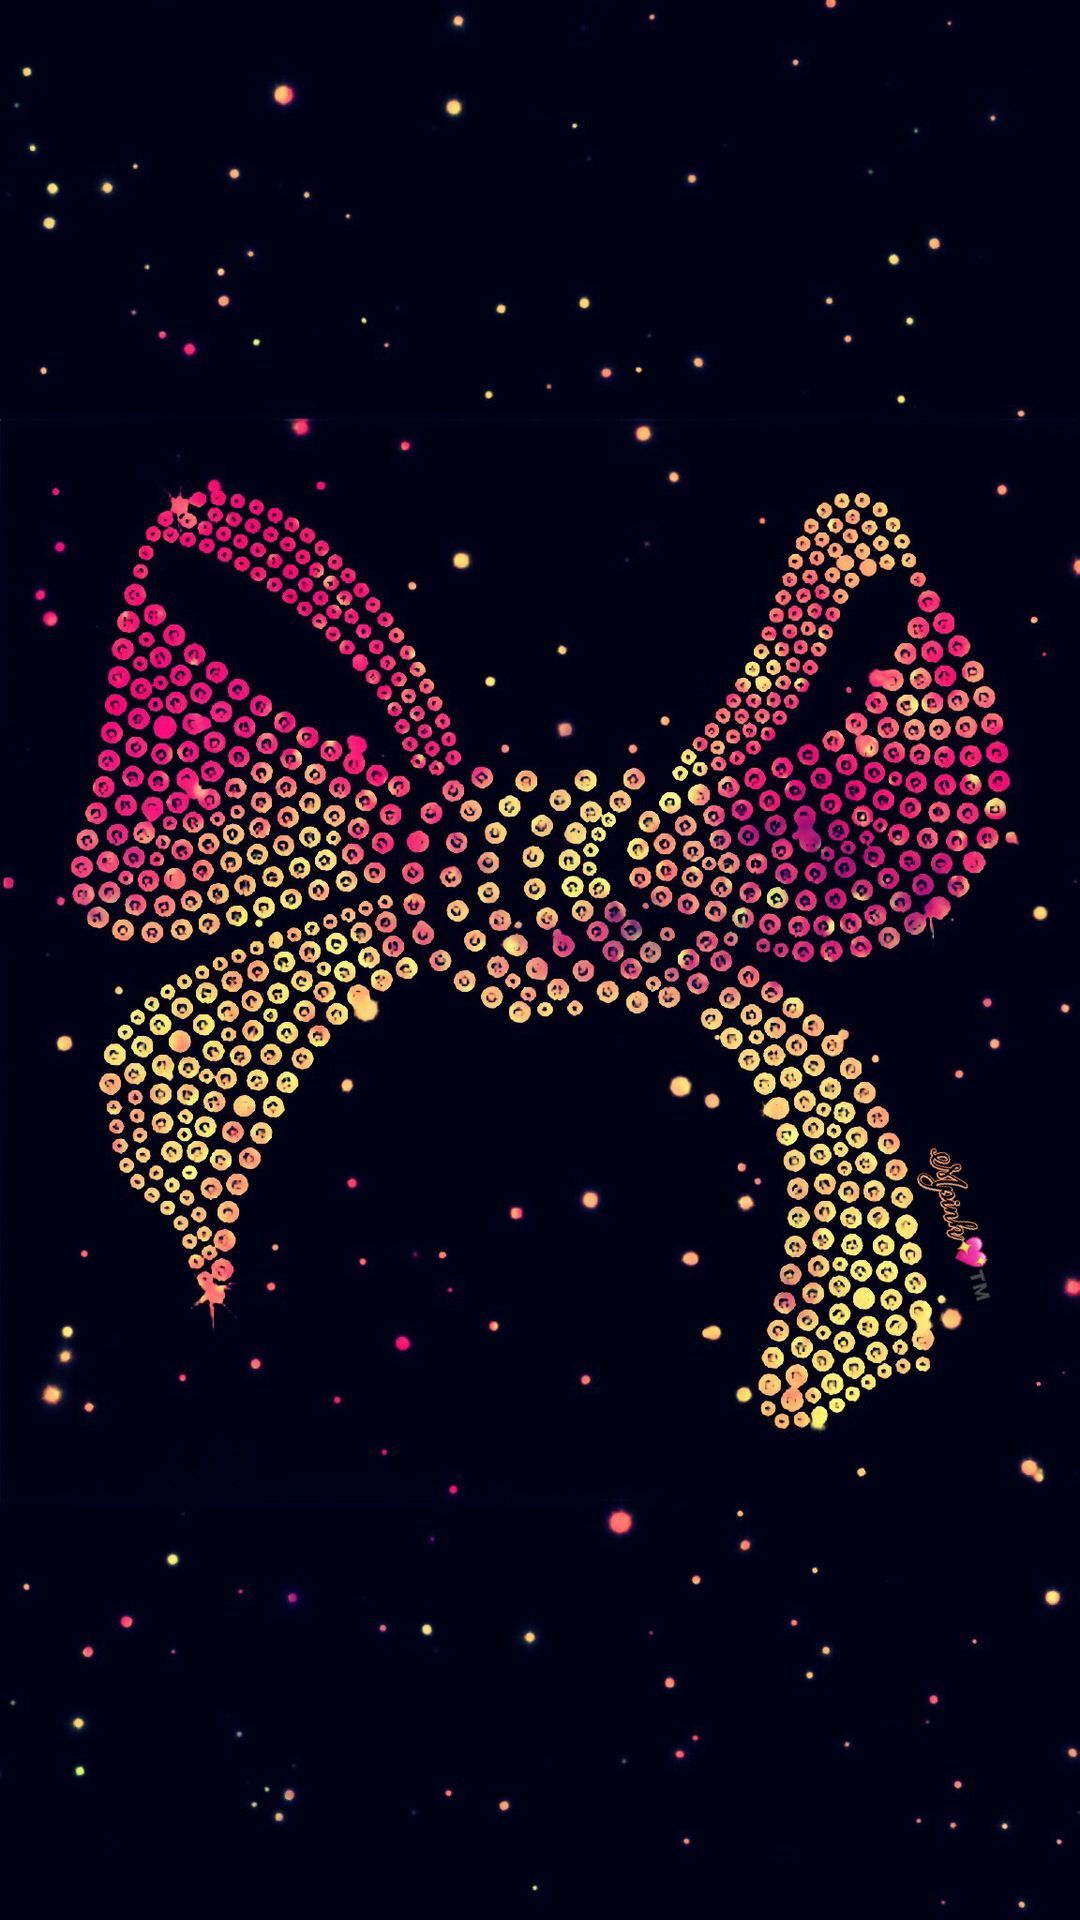 Girly Pink Black Wallpaper Mobile In 2020 Bow Wallpaper Iphone Bow Wallpaper Flower Phone Wallpaper